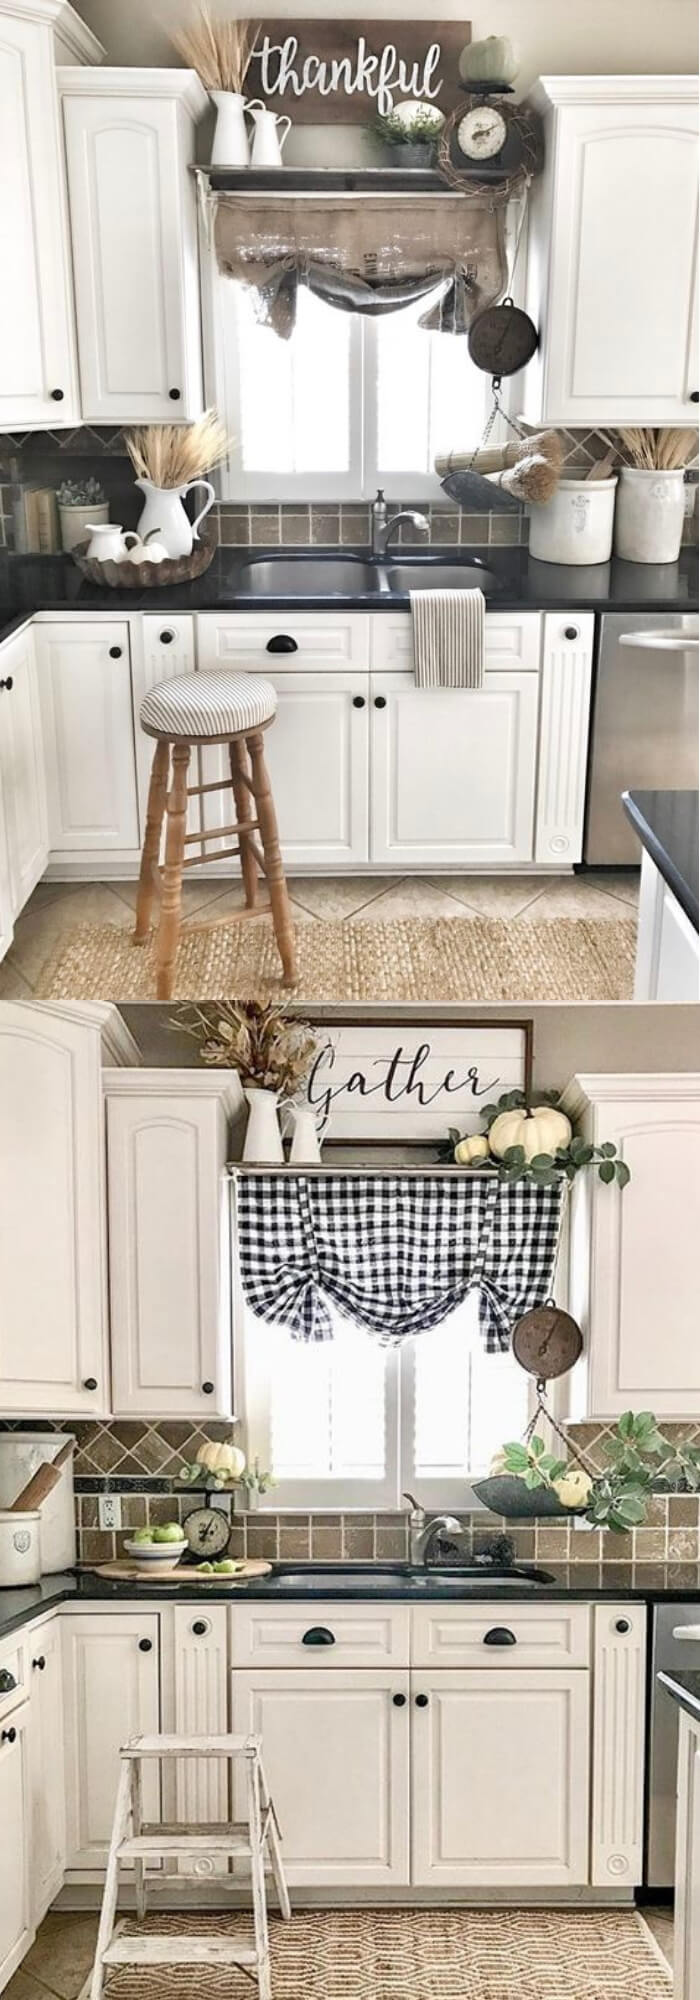 Charming Curtain with wooden sign | Inspiring Farmhouse Kitchen Design & Decor Ideas